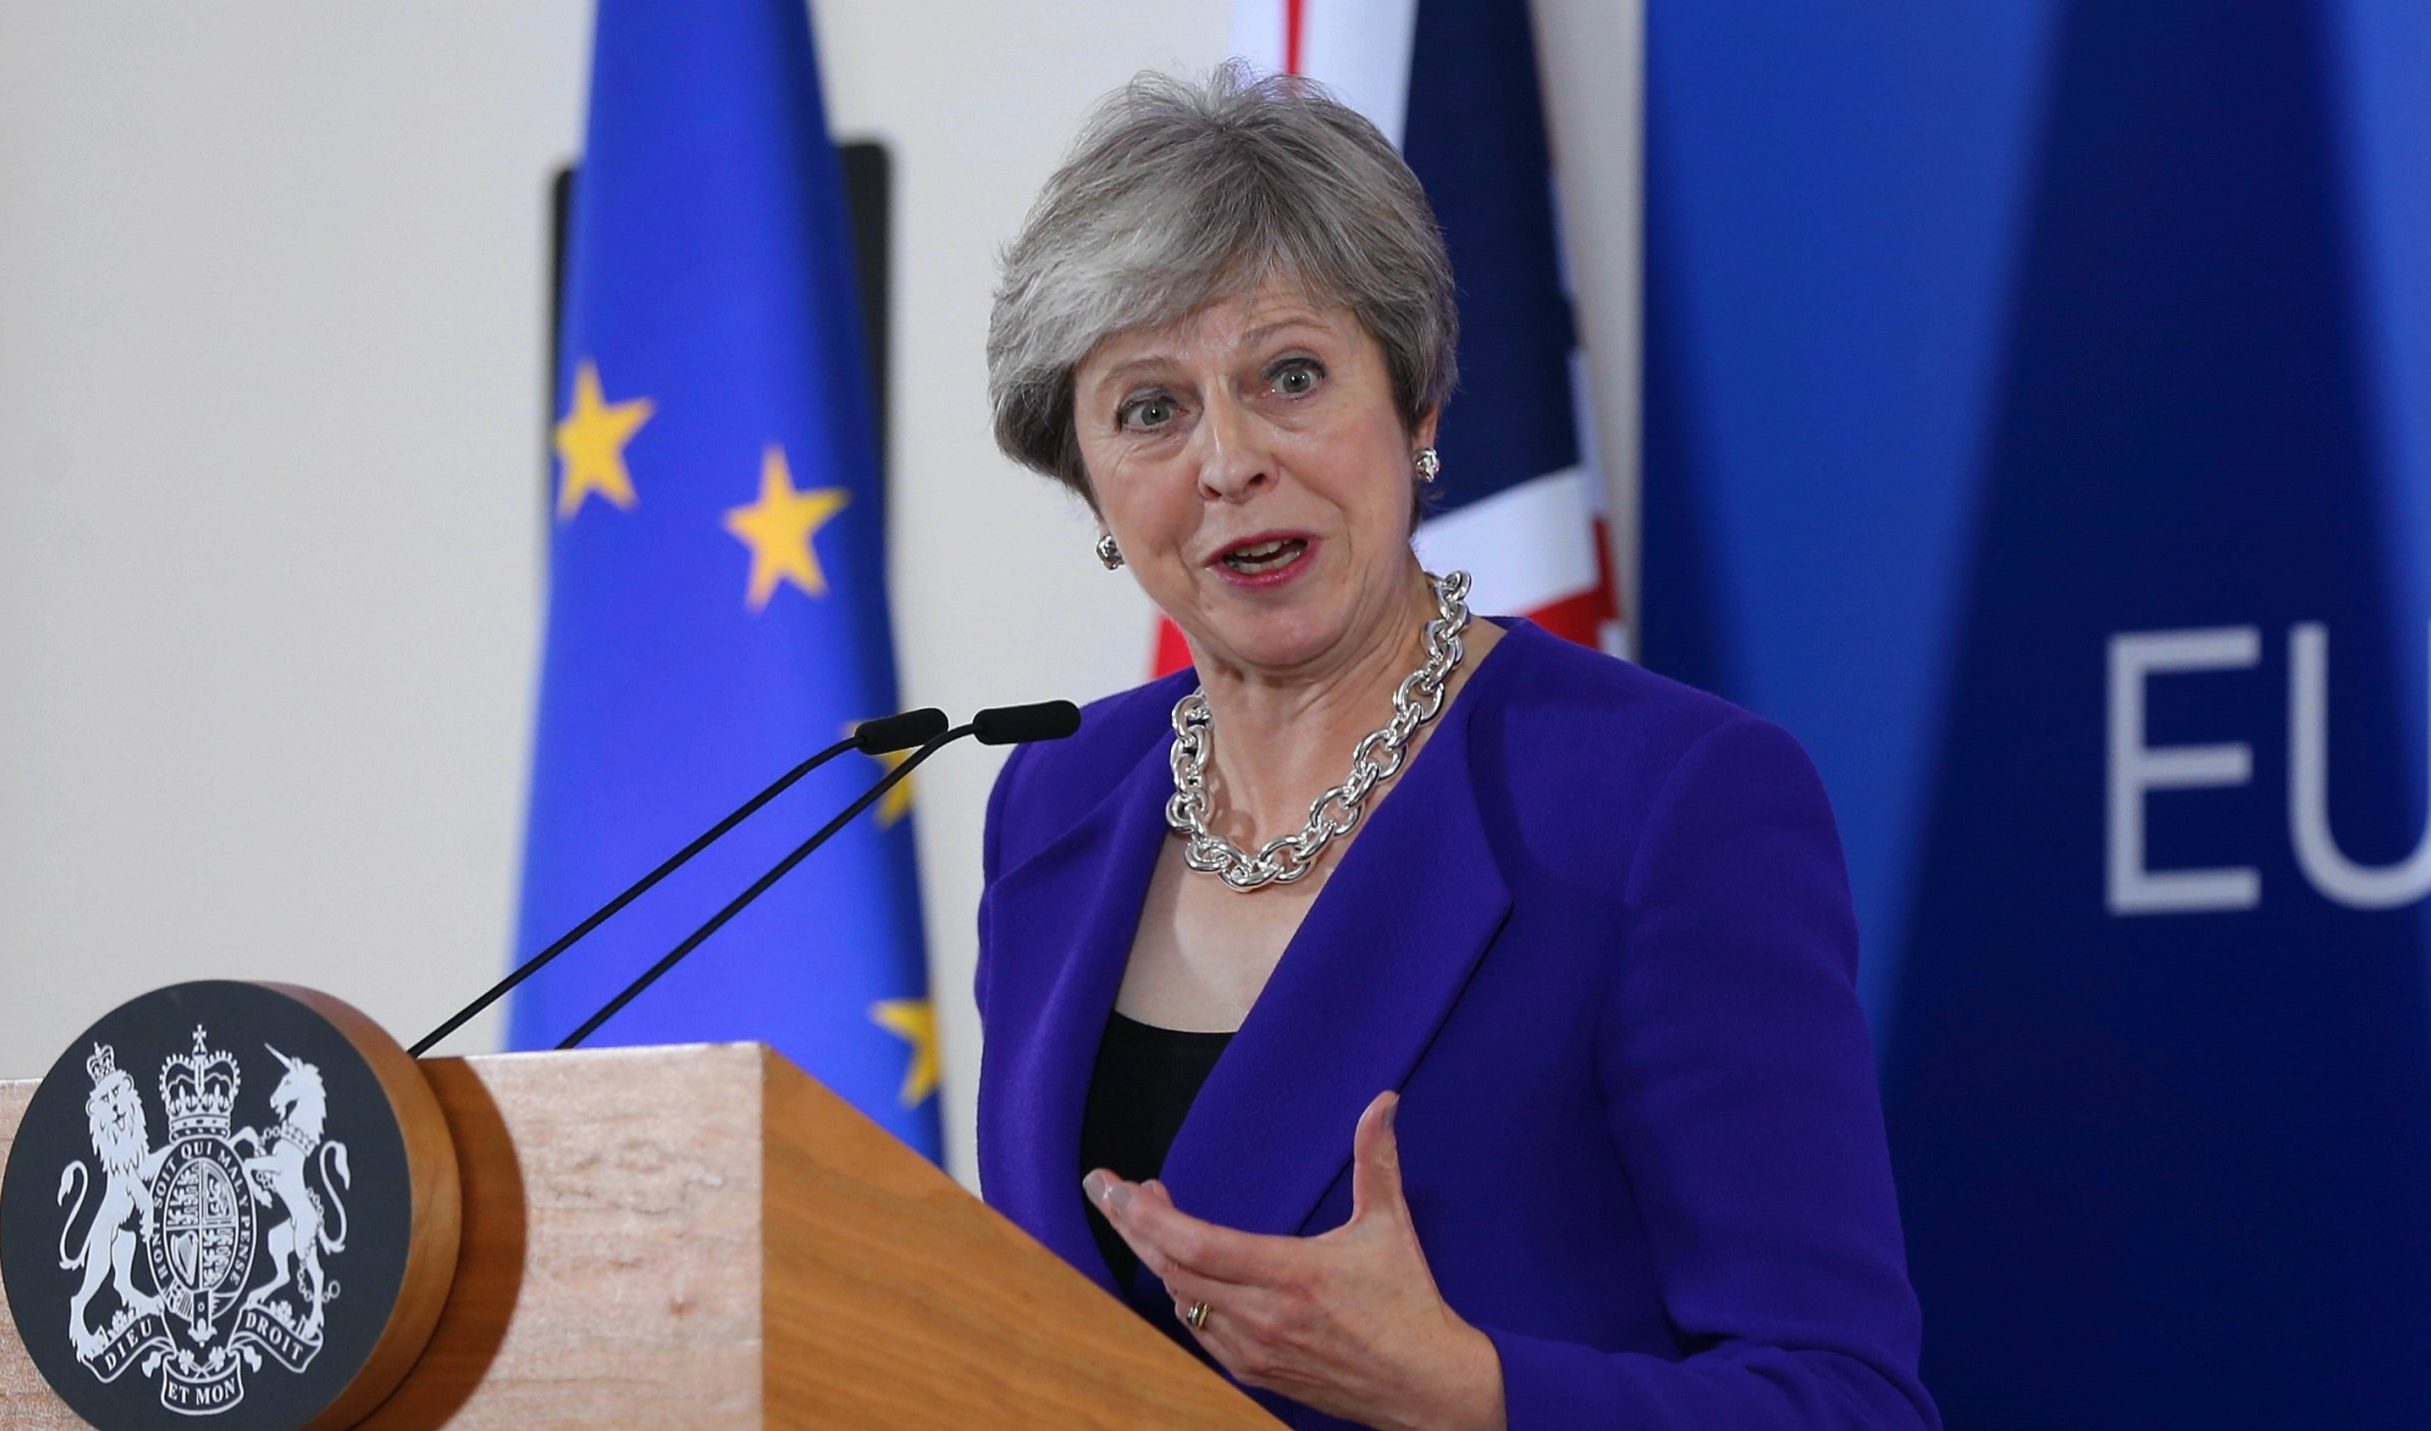 BRUSSELS, BELGIUM - OCTOBER 18 : British Prime Minister Theresa May holds a press conference after the second day of European Union leaders summit at the European Council in Brussels on October 18, 2018. (Photo by Dursun Aydemir/Anadolu Agency/Getty Images)